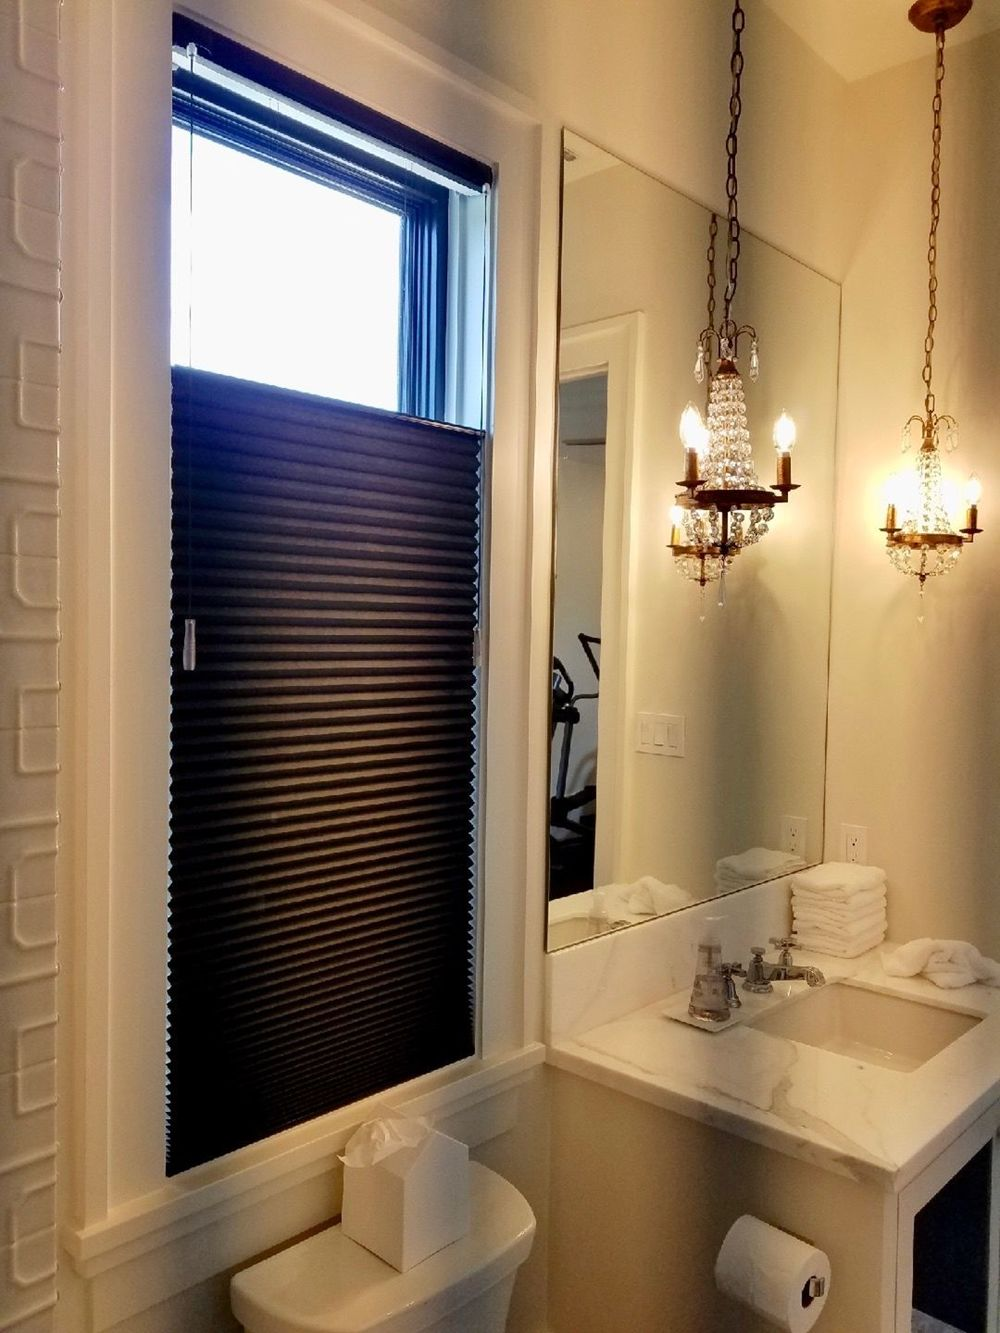 This master bathroom offers a small single sink lighted by a gorgeous pair of chandeliers hanging from a tall ceiling.